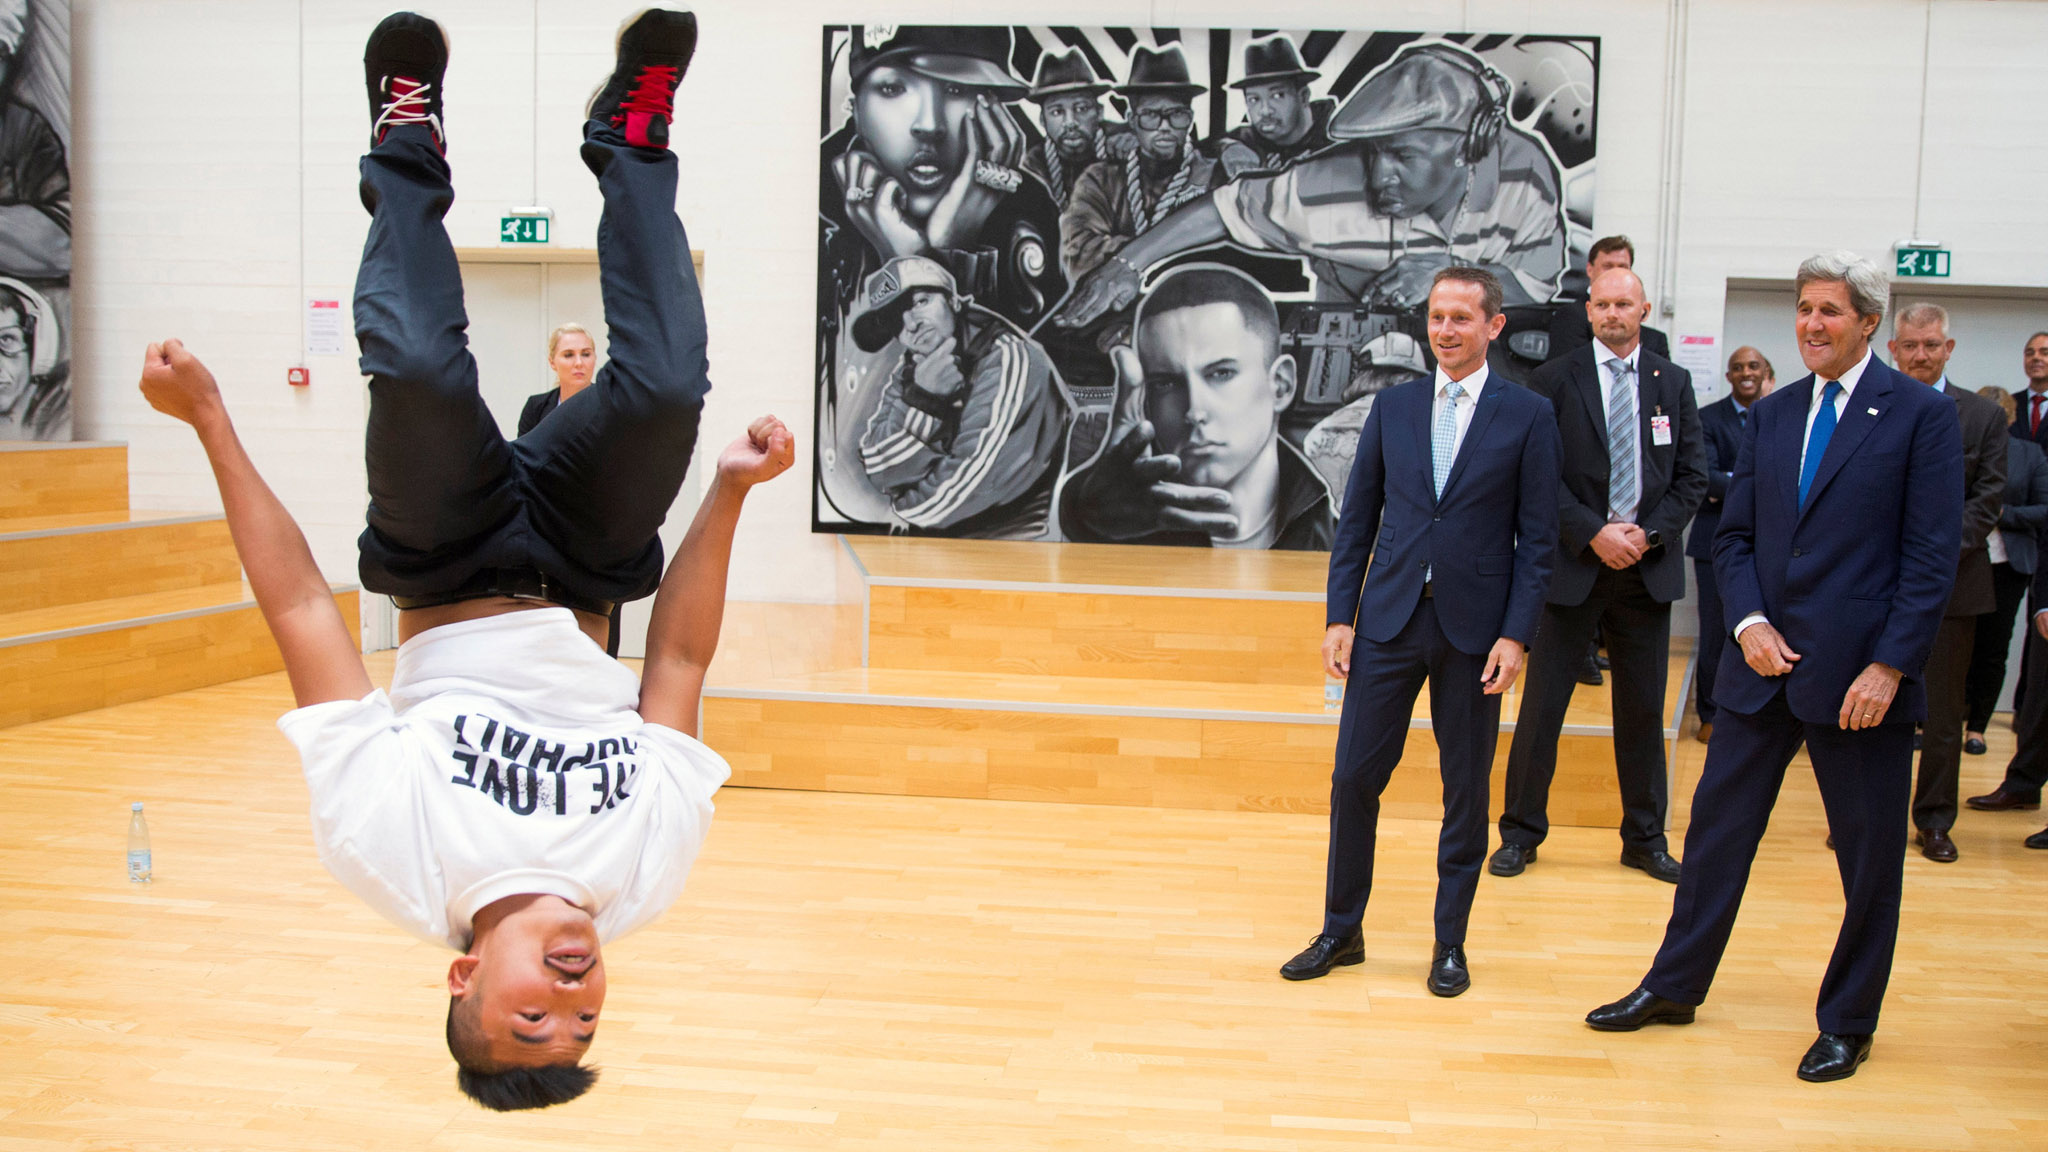 U.S. Secretary of State John Kerry (R) and Danish Foreign Minister Kristian Jensen look on as a breakdancer performs during a tour of GAME, an organization that promotes youth sports, in Copenhagen, Denmark June 17, 2016. REUTERS/Evan Vucci/Pool